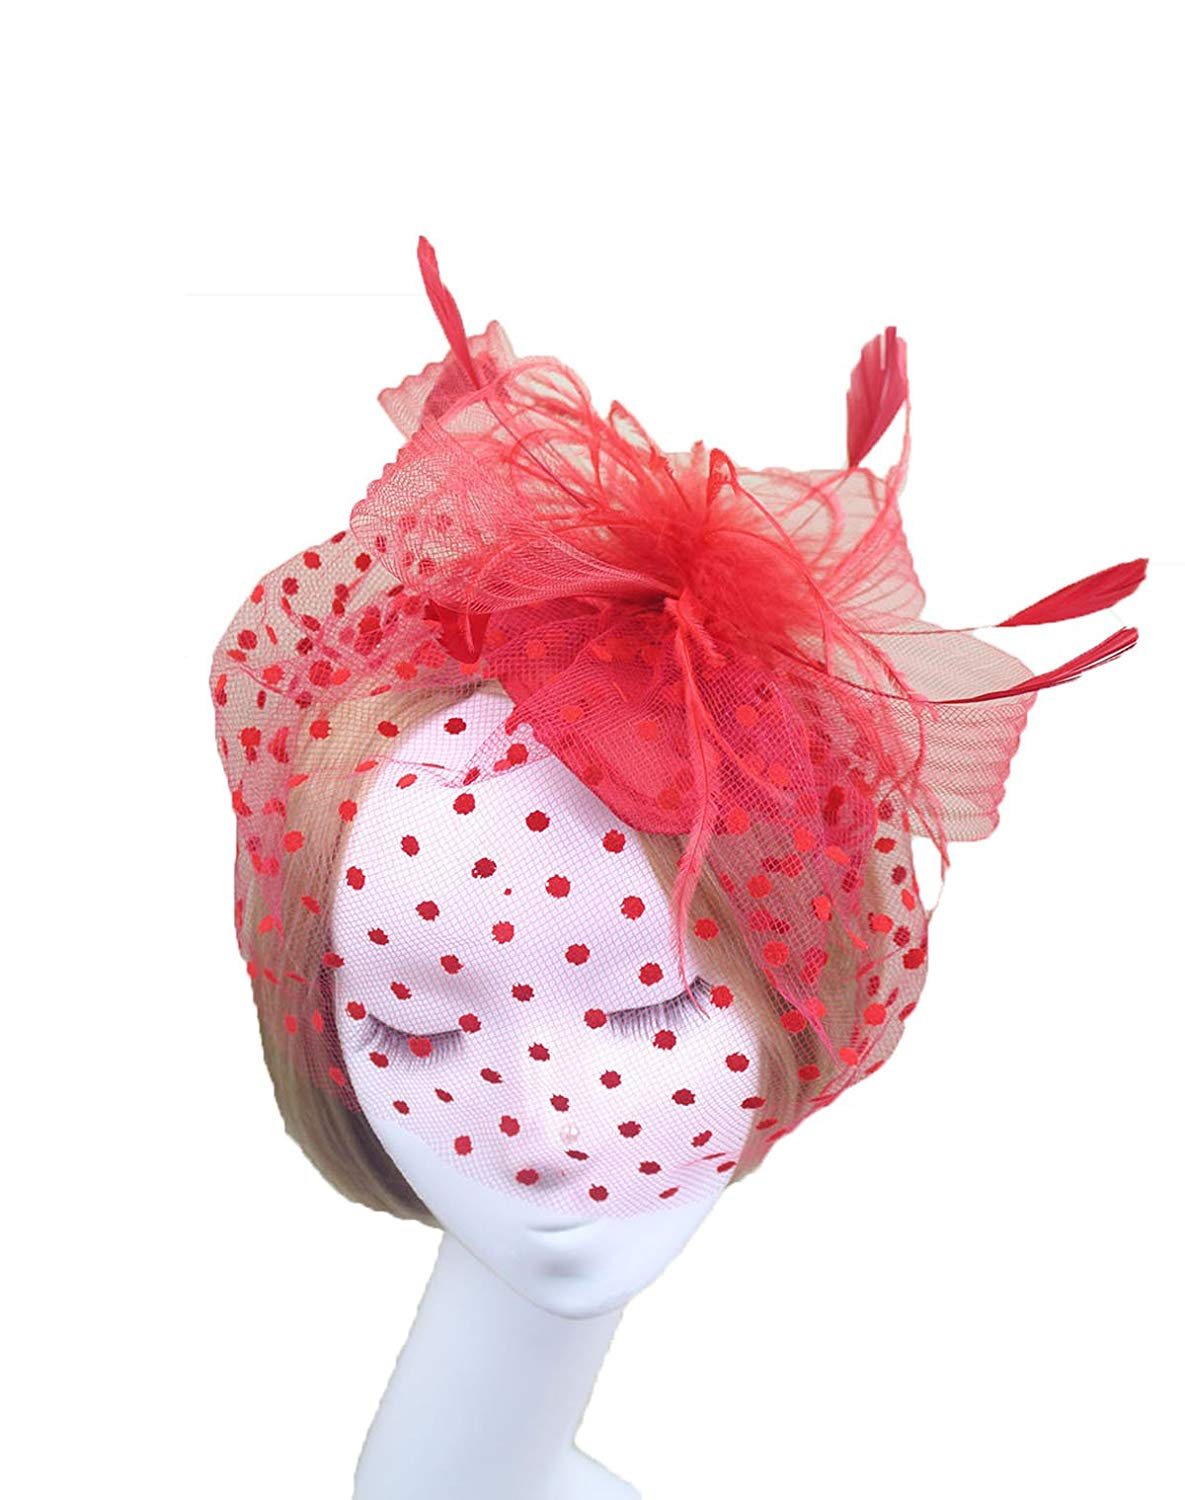 70463bdc815 Get Quotations · Topfly® Women s Feather Veil Derby Fascinator Cocktail  Party Hair Clip Hat